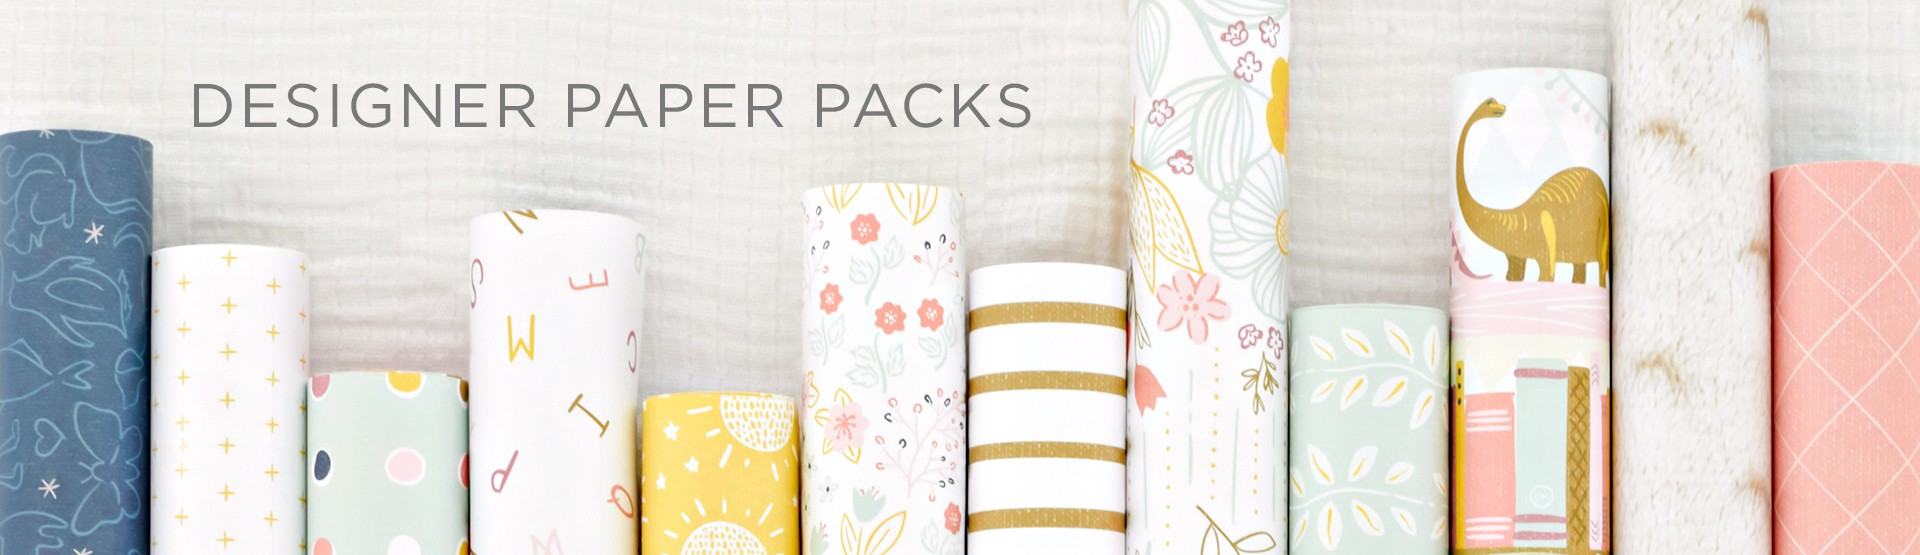 Designer Paper Packs